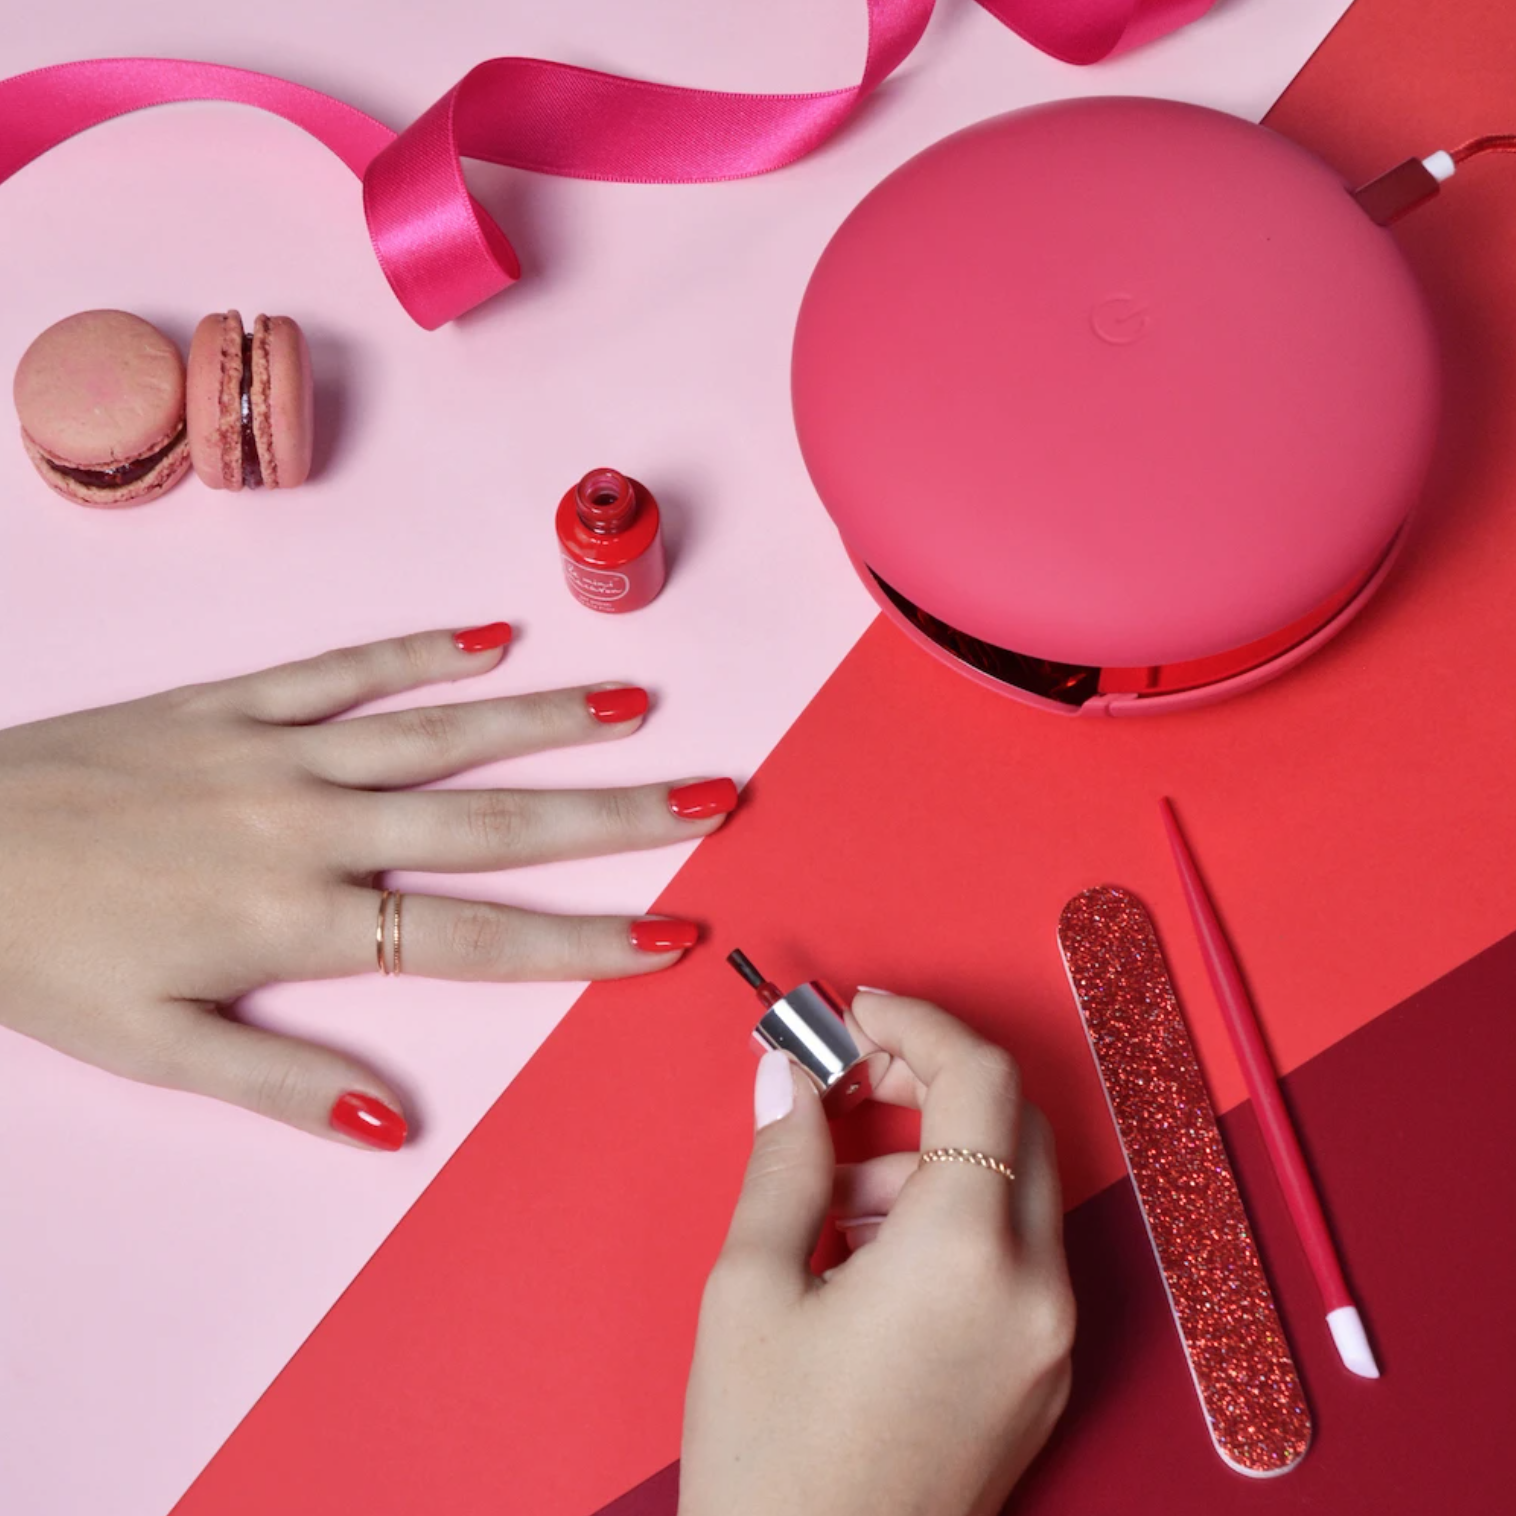 hand painting nails using le mini macaron gel kit